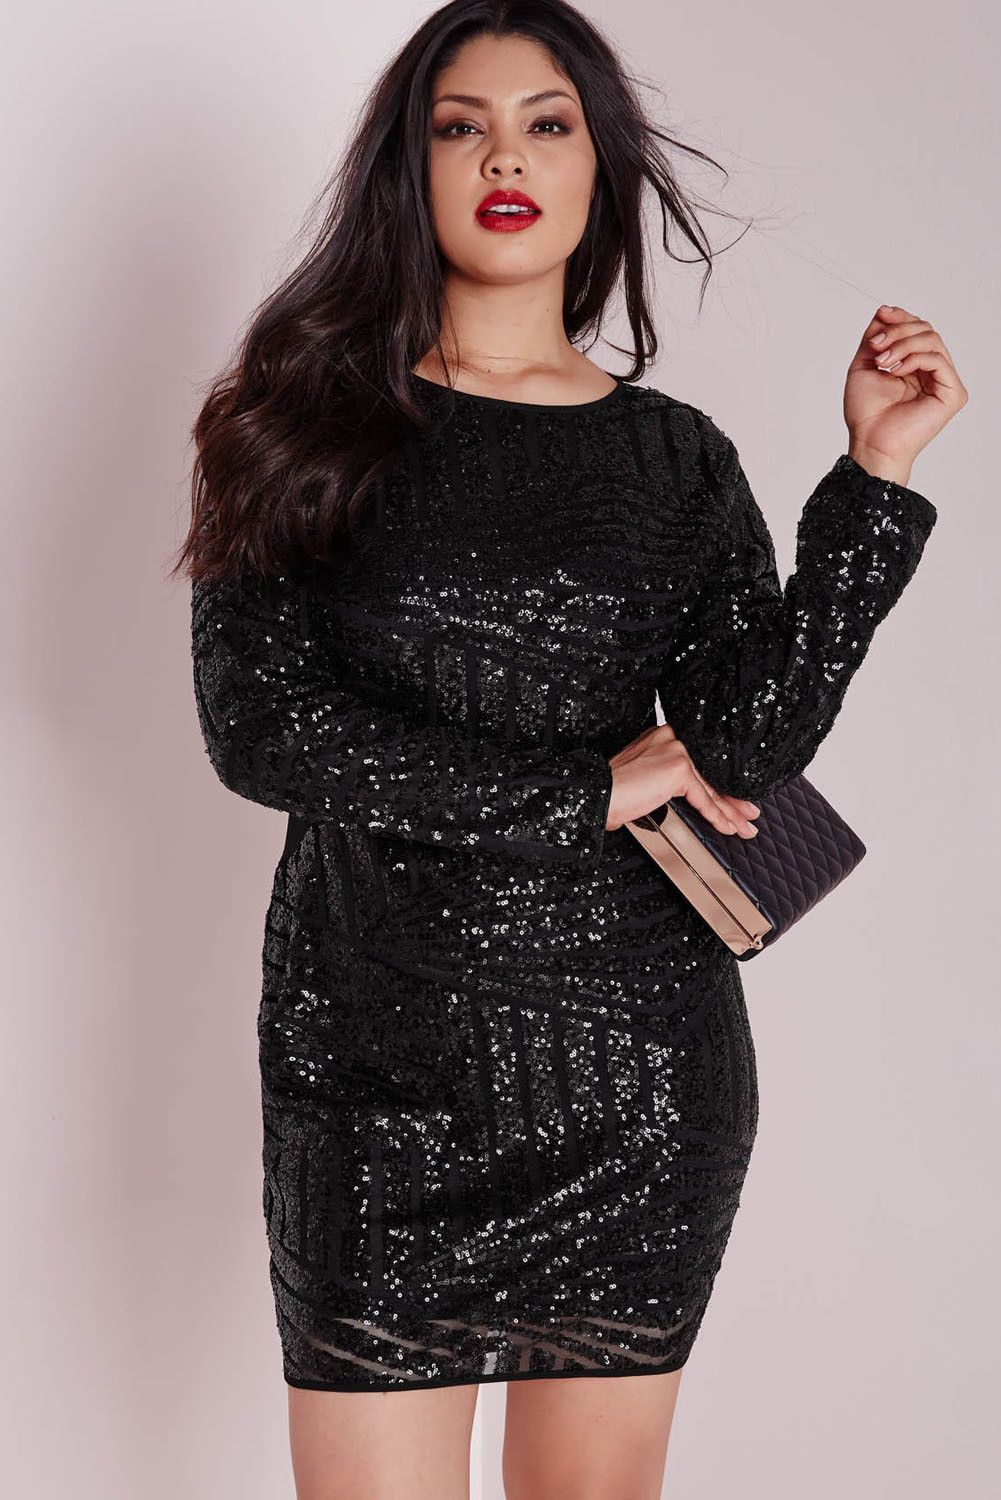 Plus Size Black Sequin Dress in 2019 | Styles <3 | Black sequin ...